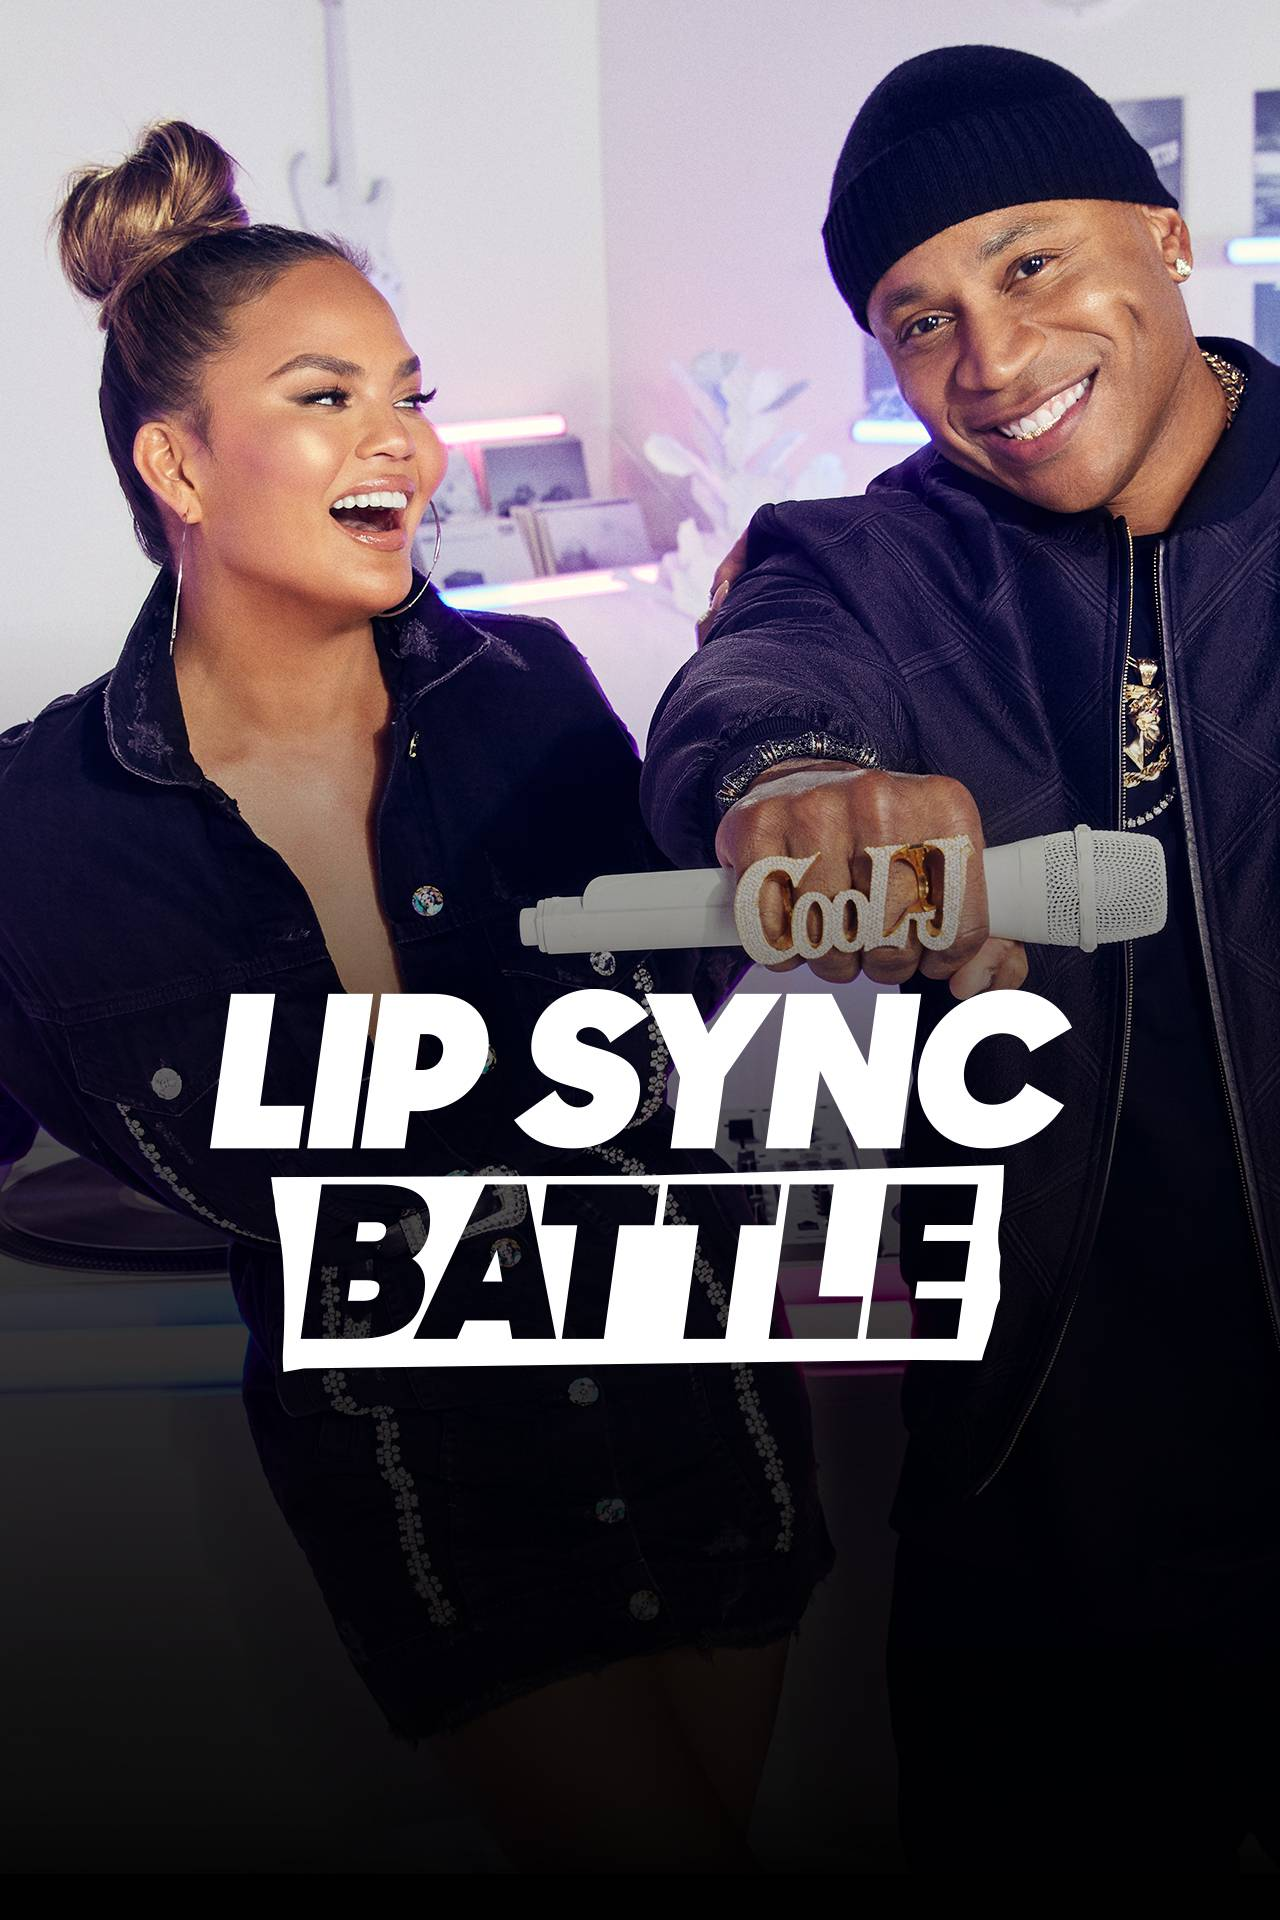 Lip Sync Battle - Season 5 - TV Series | Paramount Network